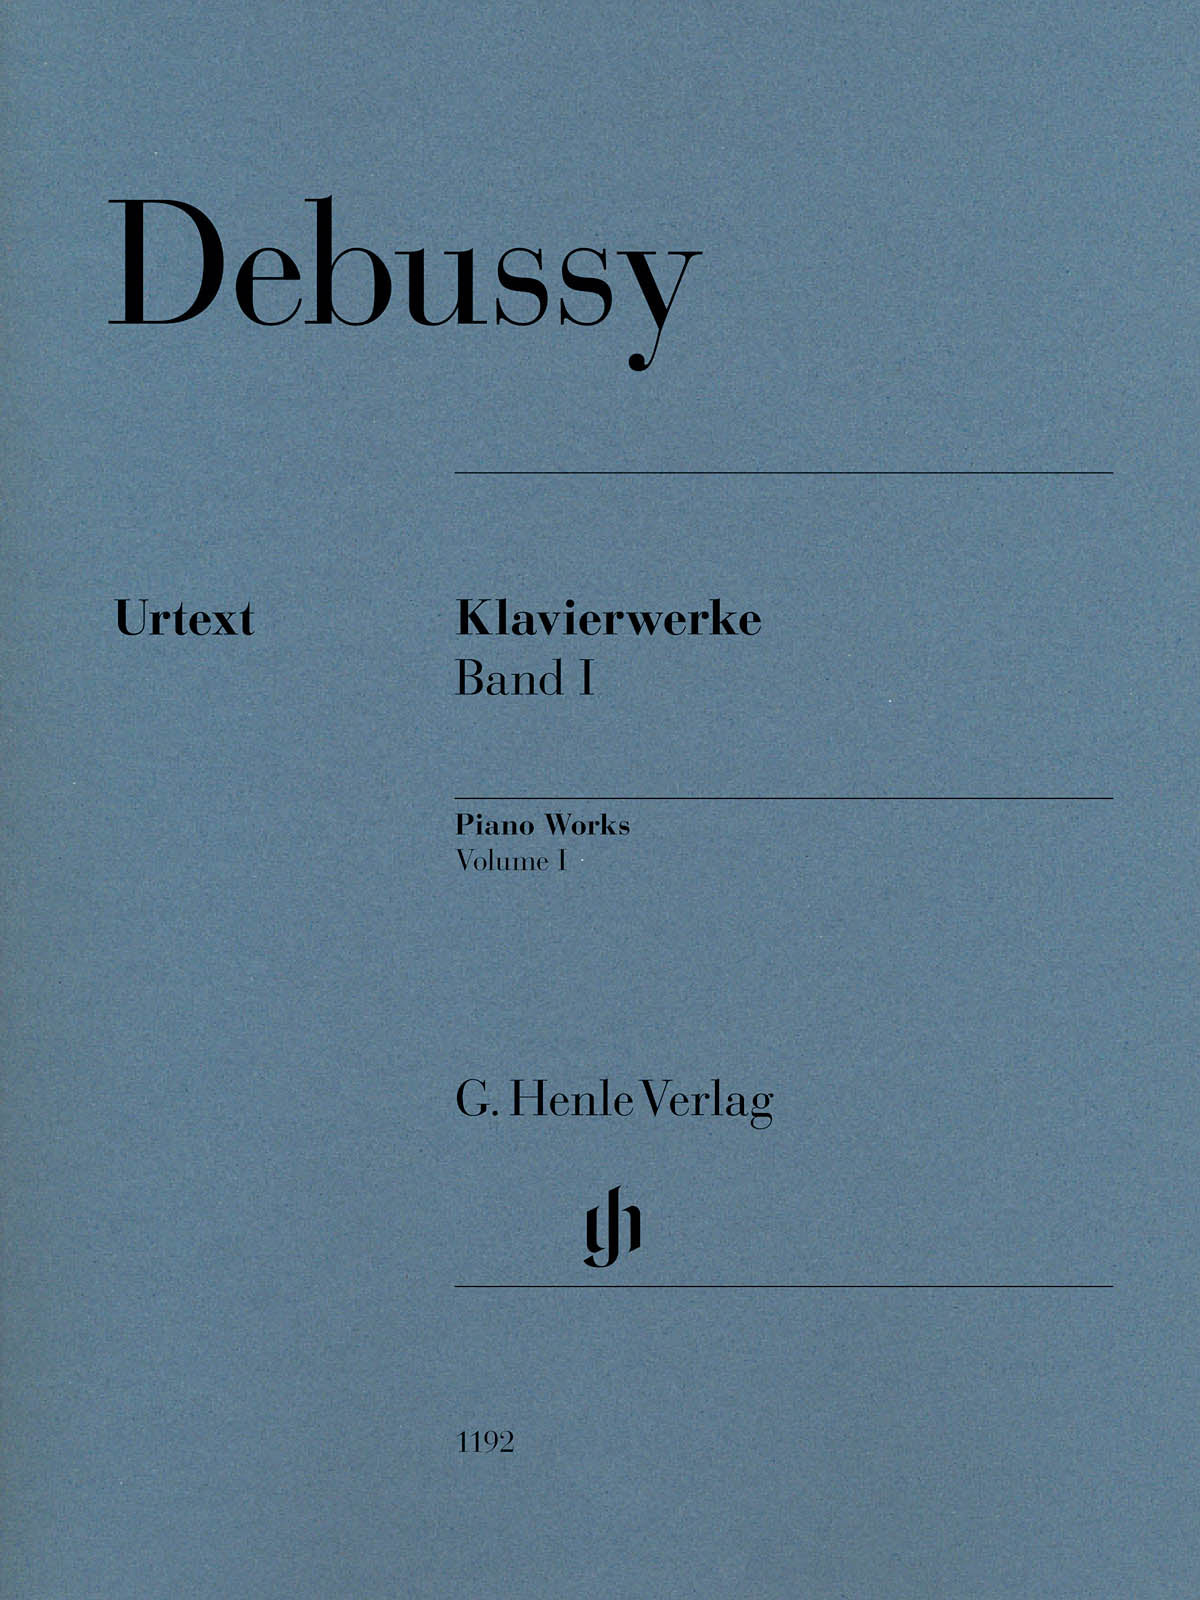 Debussy: Piano Works - Volume 1